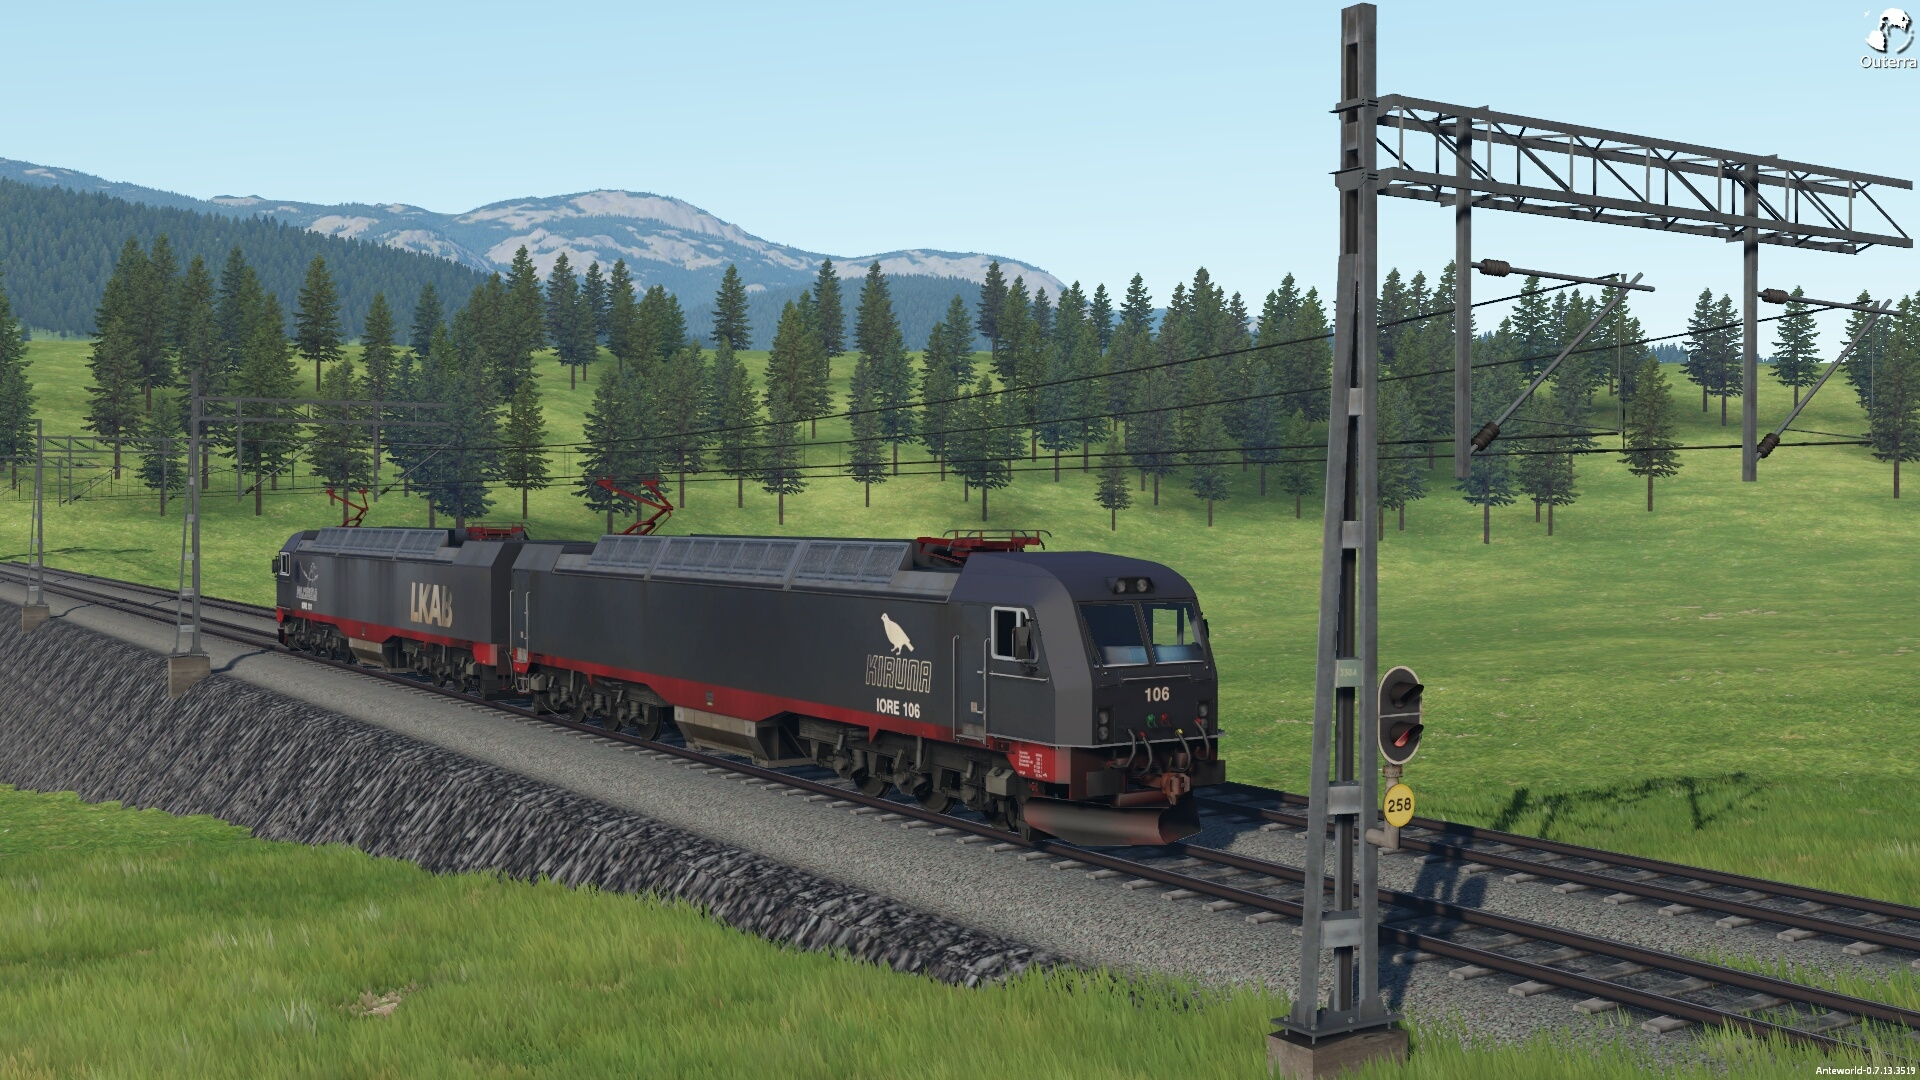 trains: IORE locomotion from Sweden (made in Germany) - Download